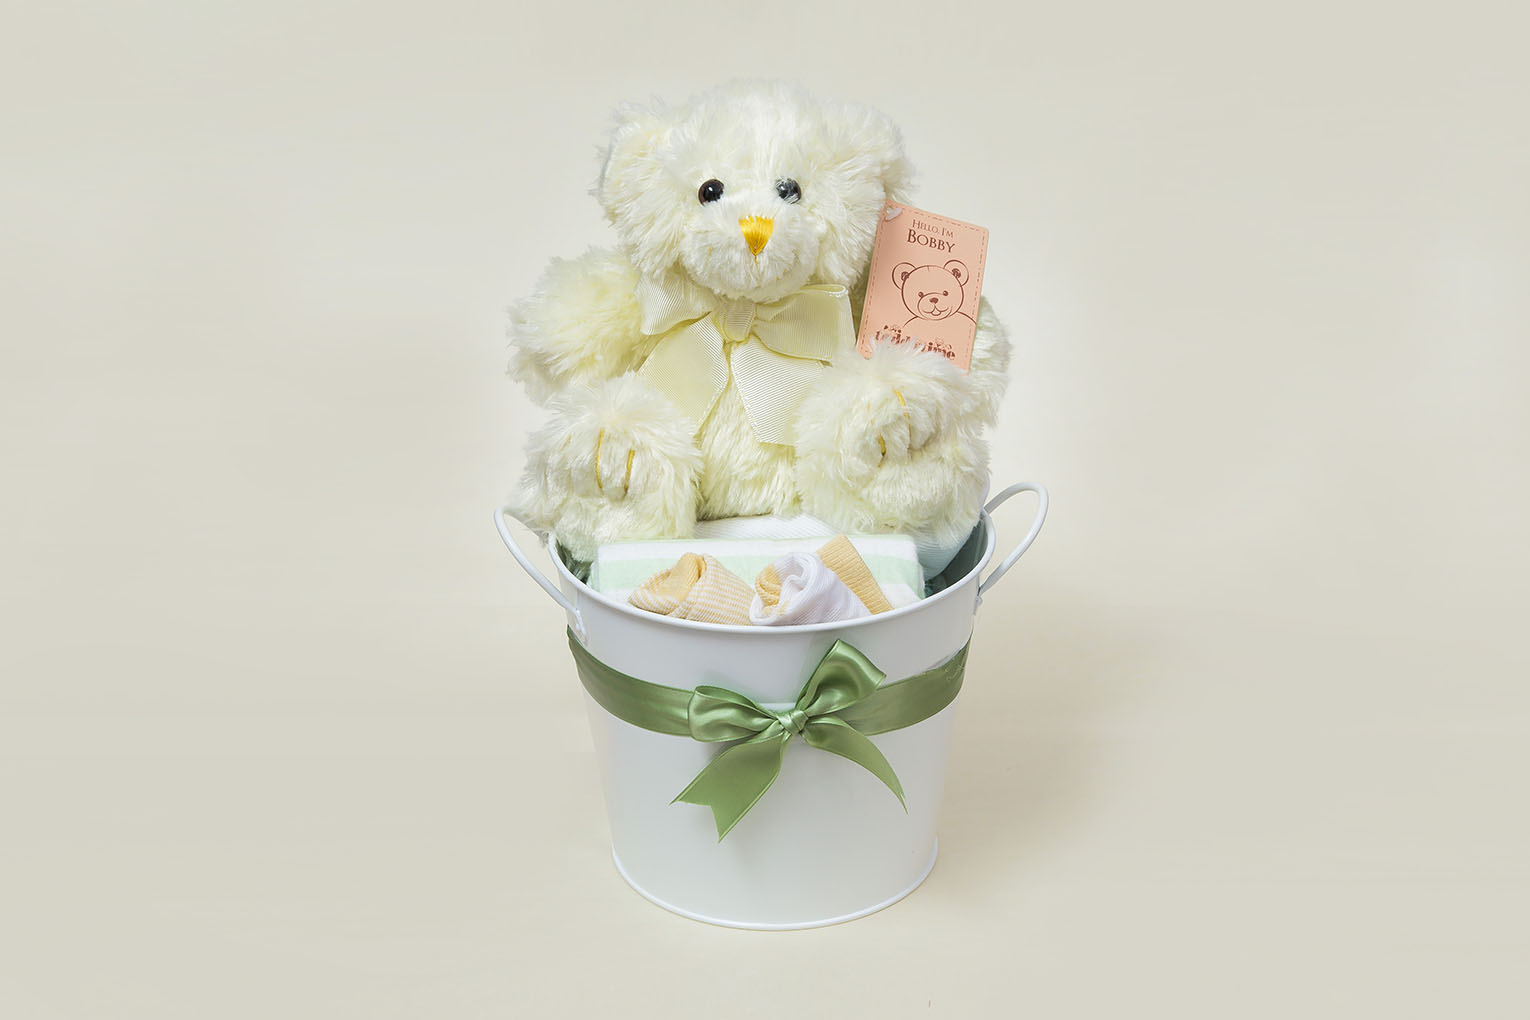 baby-stitch-penrith-product-photography-06